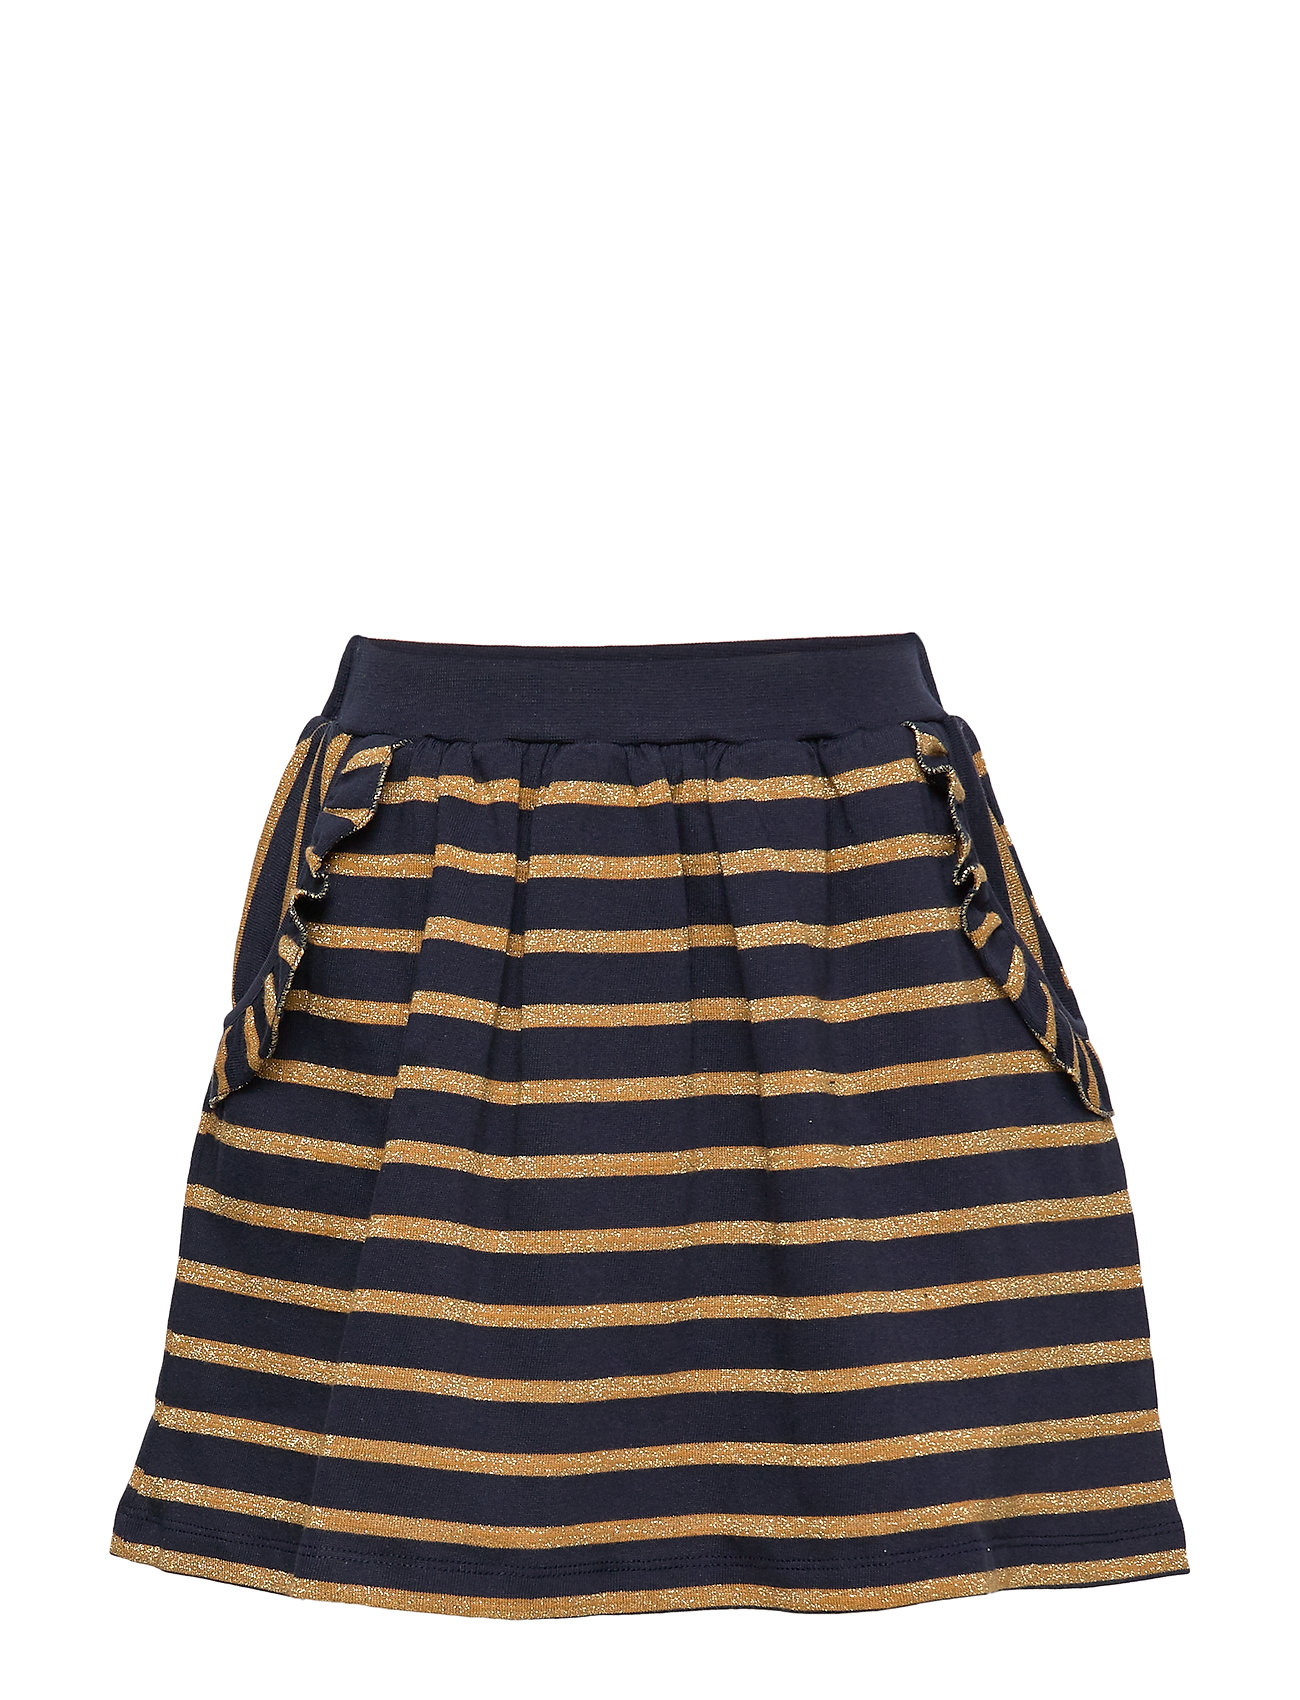 Noa Noa Miniature Skirt - NAVY BLAZER